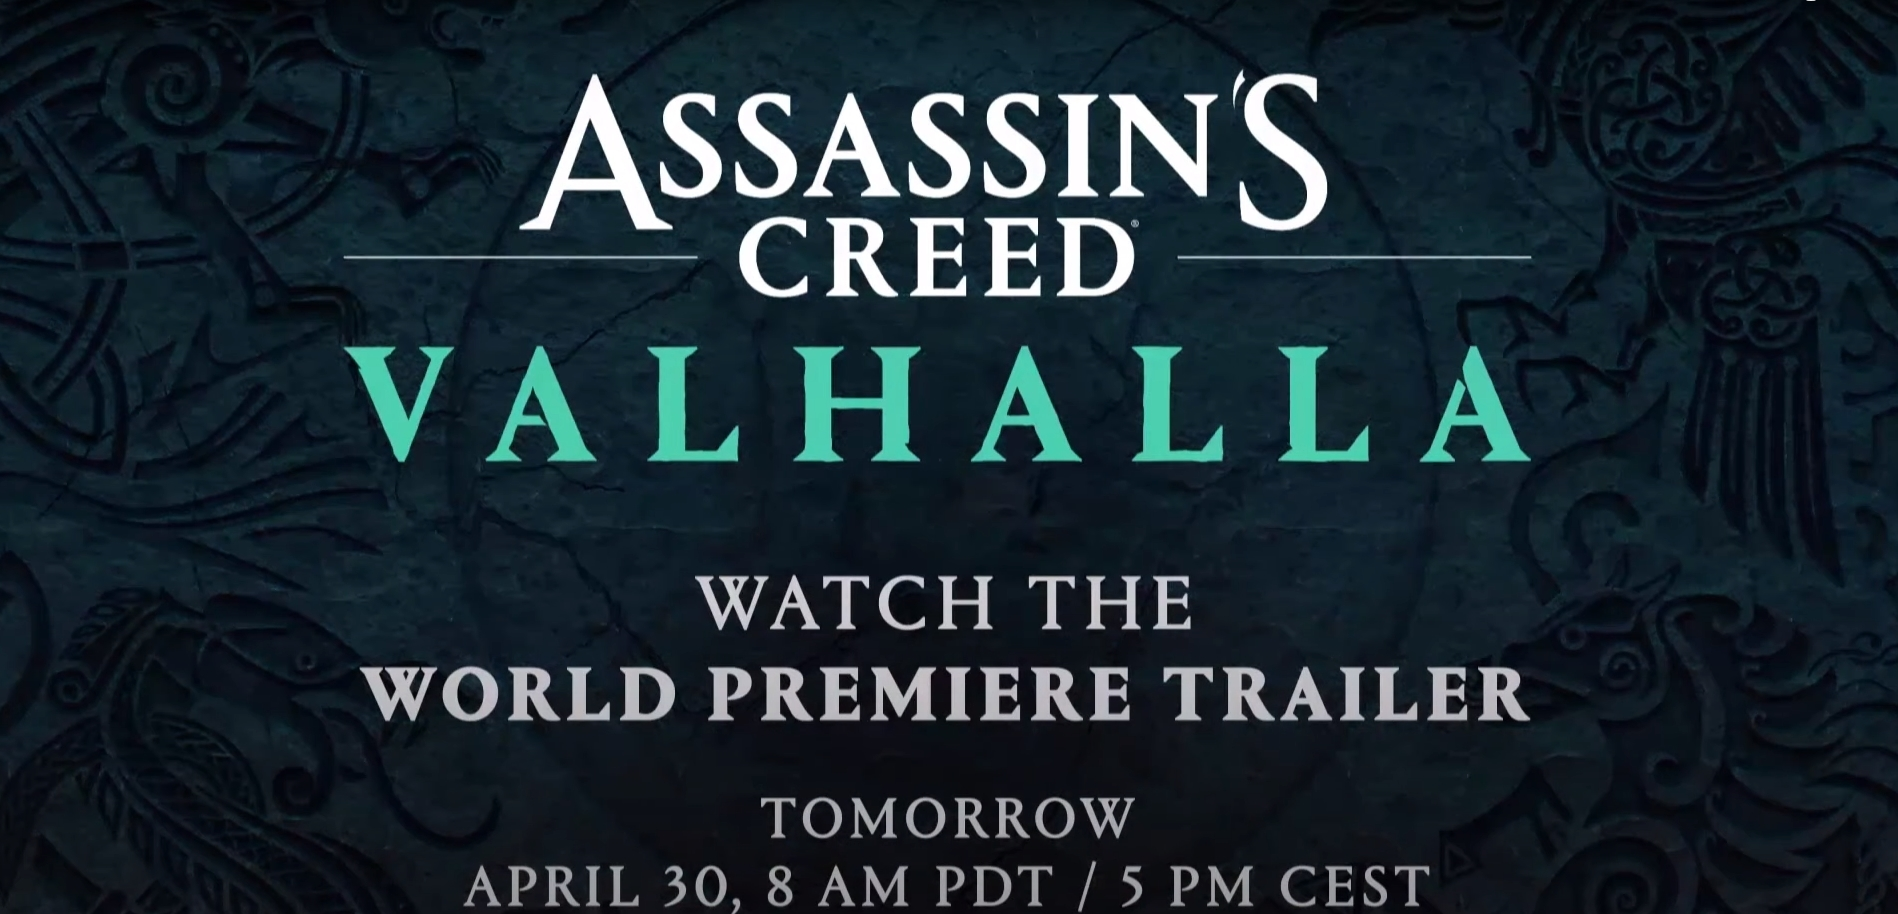 Ubisoft Announces Assassin's Creed Valhalla, Bringing Vikings To The Famous Franchise